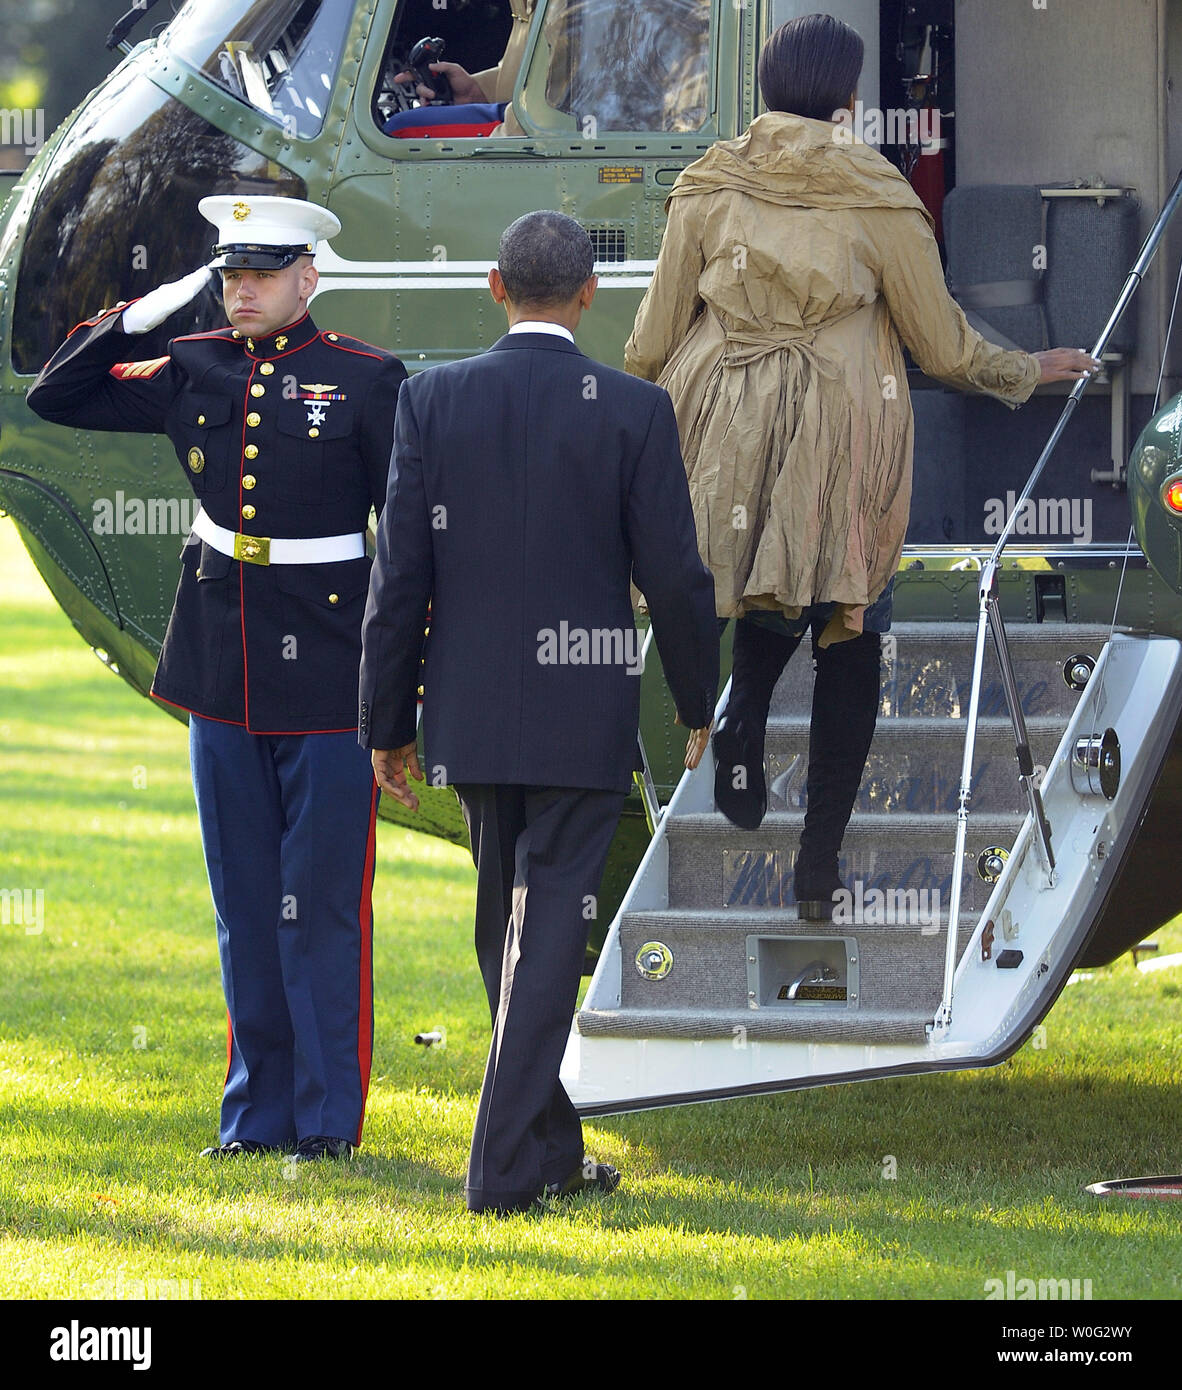 U.S. President Barack Obama and First Lady Michelle Obama embark Marine One on the South Lawn of the White House as they begin a ten day trip to Asia in Washington on November 5, 2010.   UPI/Roger L. Wollenberg Stock Photo